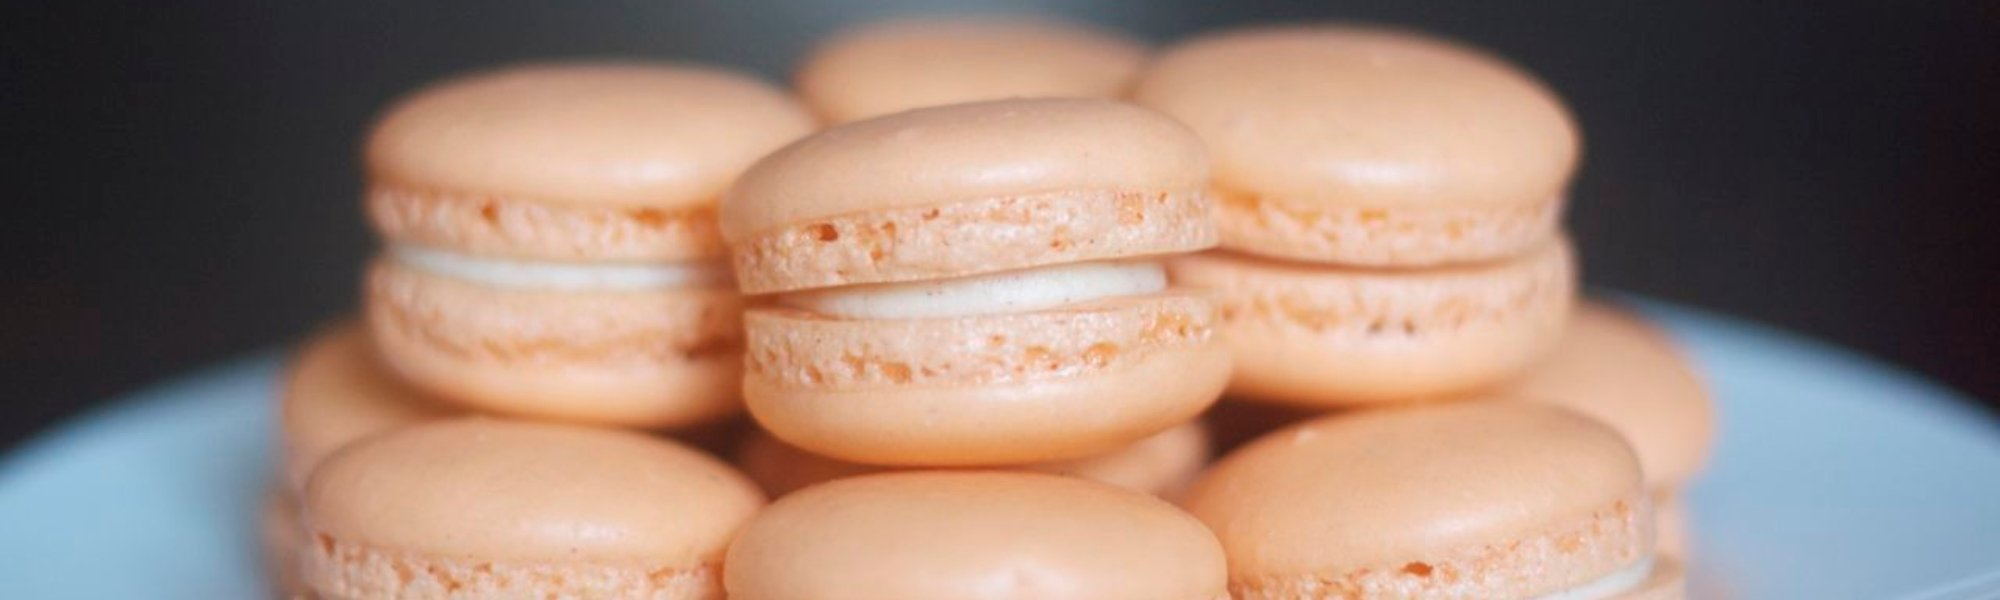 Orange creamsicle macarons by Edible Times Culinary Services, Boise, Idaho